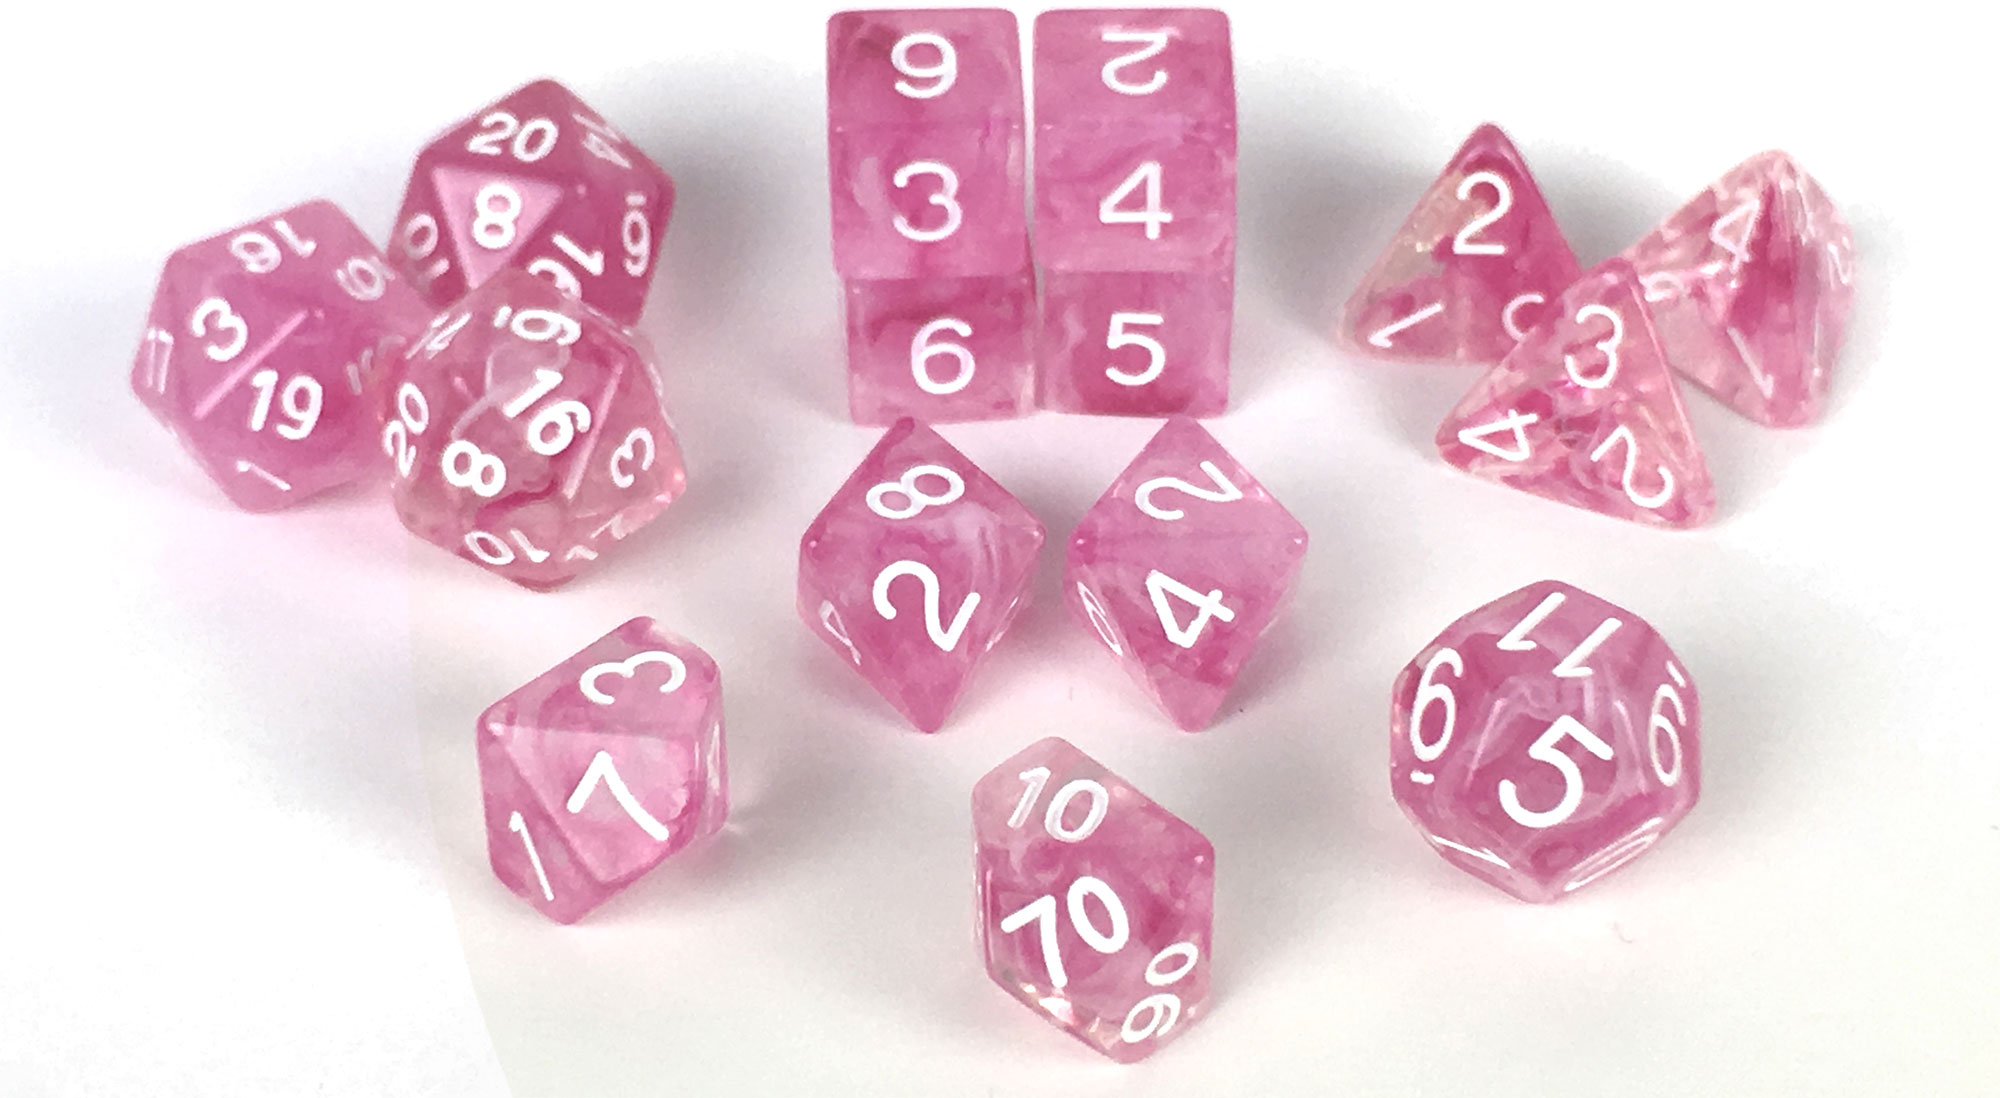 Blue Ink with White Numbers 15 Set Diffusion Dice